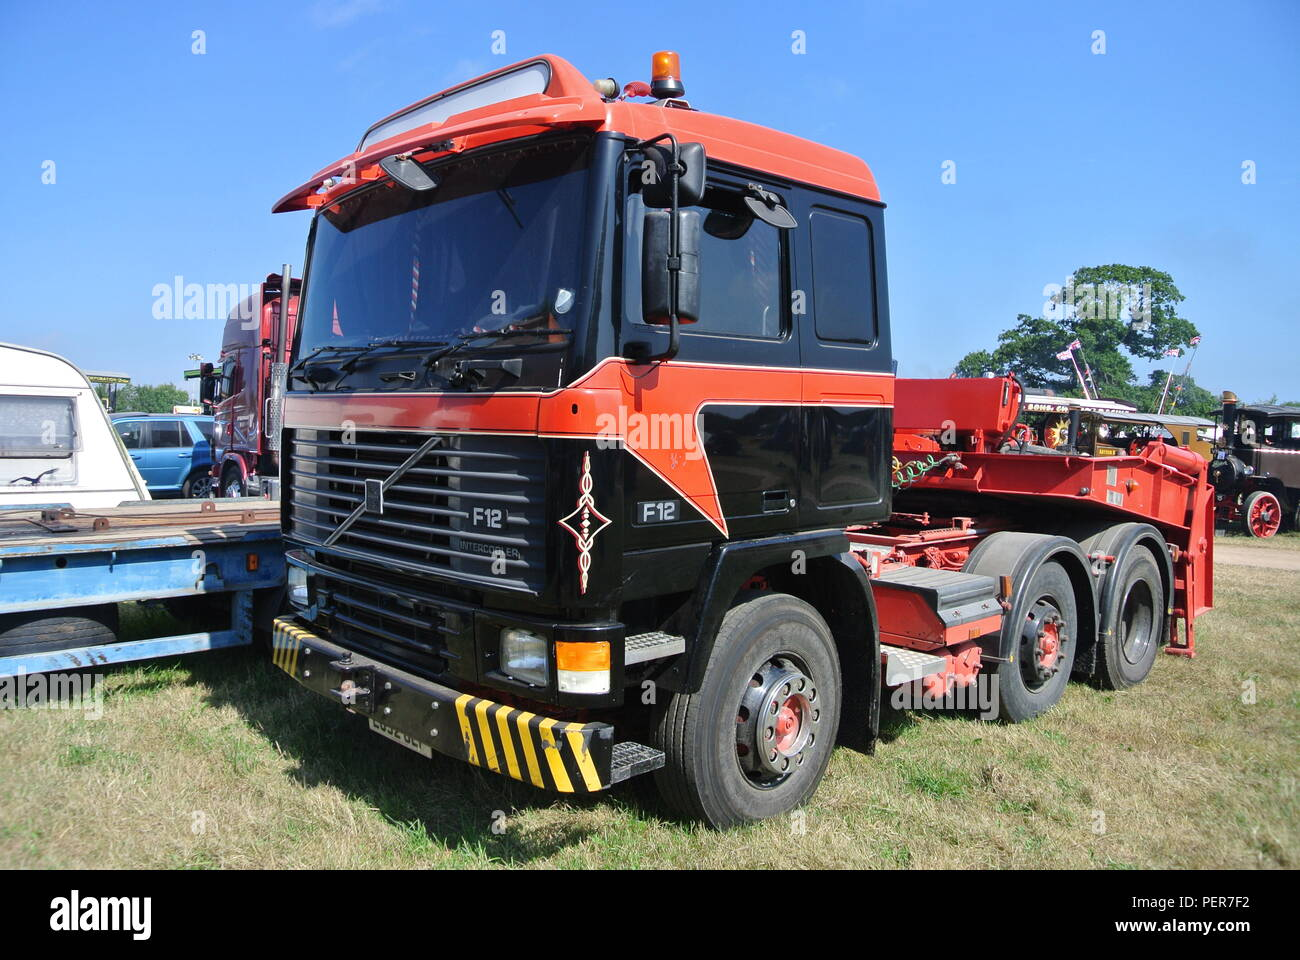 a Volvo F12 lorry with low loader attachment at Torbay Steam Fair, Churston, Devon, England. - Stock Image